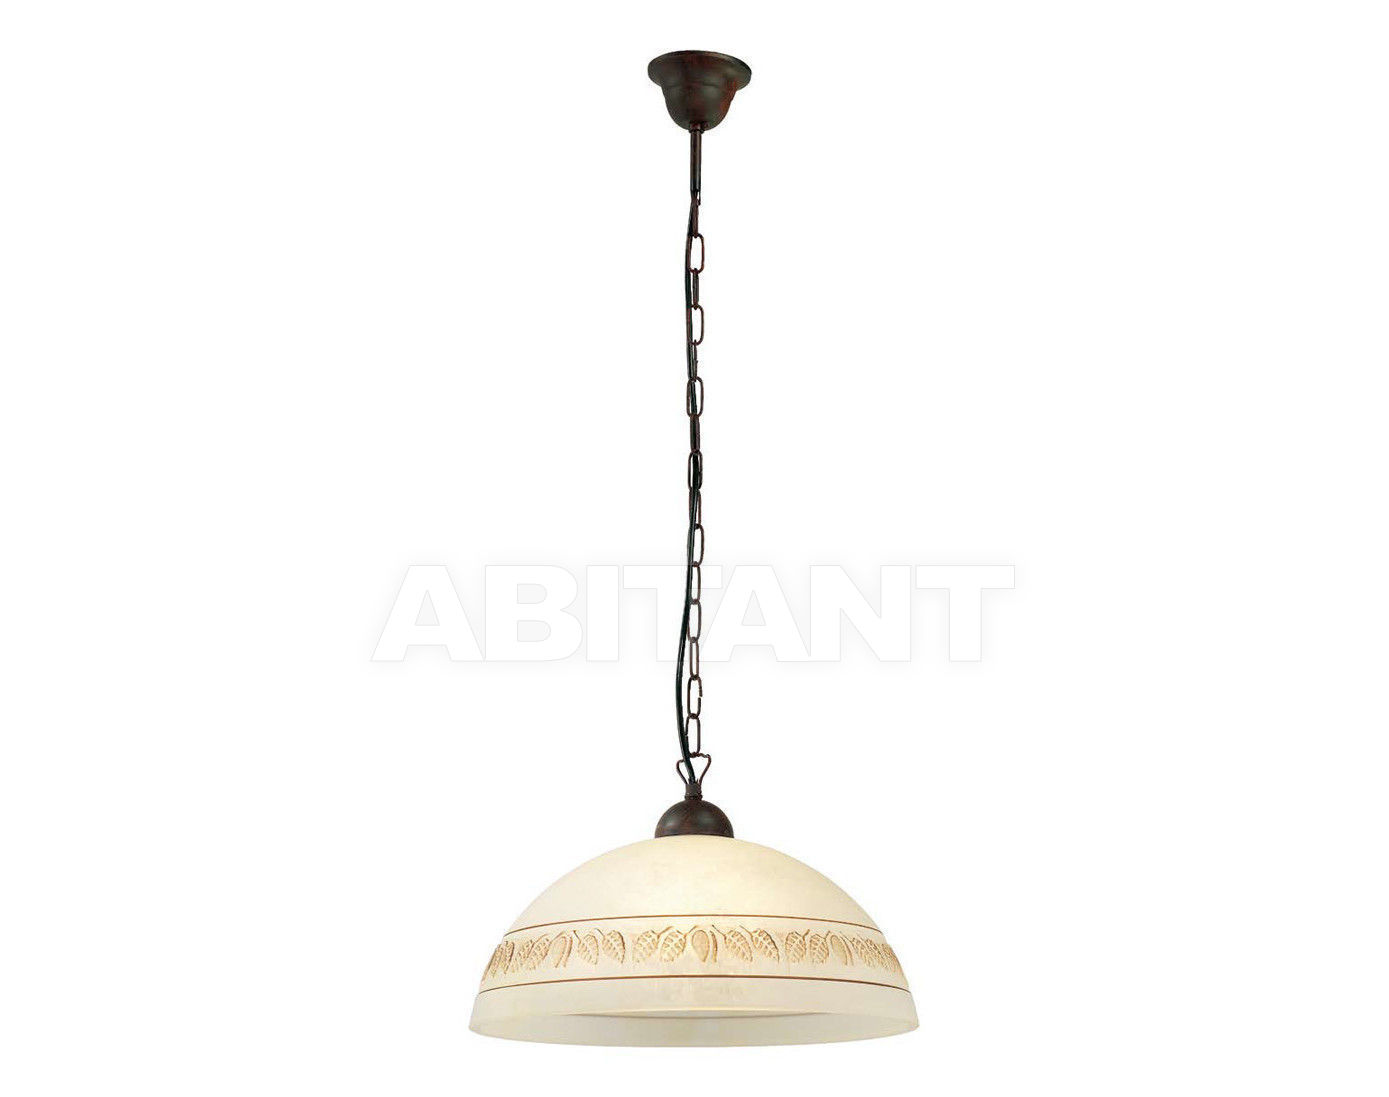 Купить Светильник Barrel Leonardo Luce Italia Interno Decorativo 2296/S1